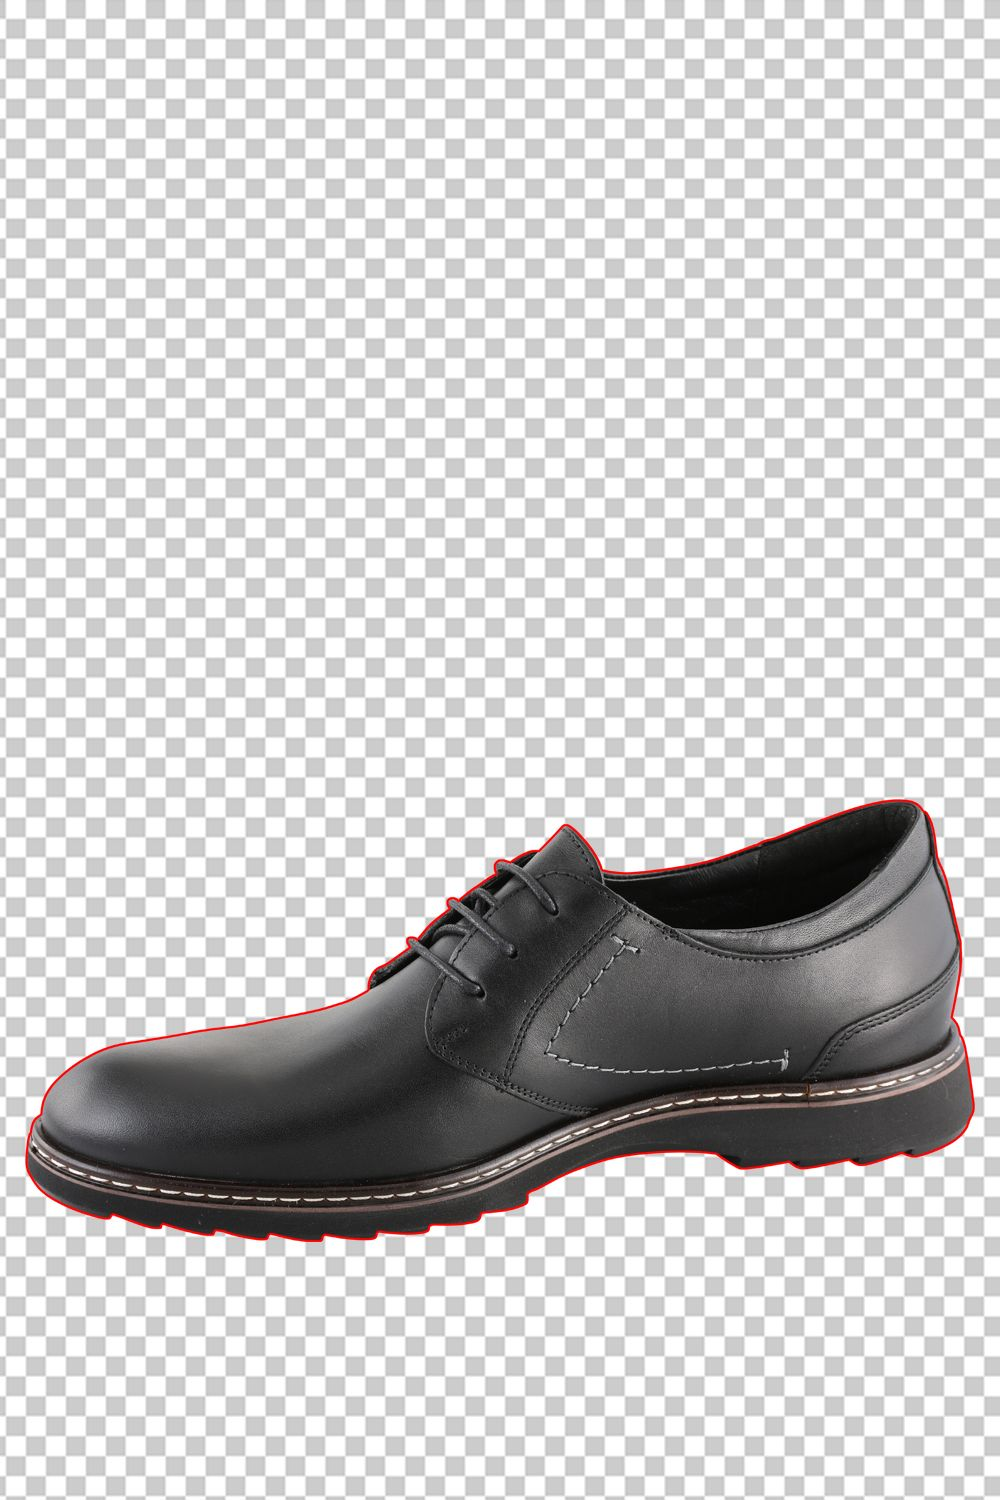 Image editing service to remove background from images with many anchor points and multiple paths are called medium-level Clipping Paths. #transparentbackground #clippingpath #photoediting #backgroundremove #shoes